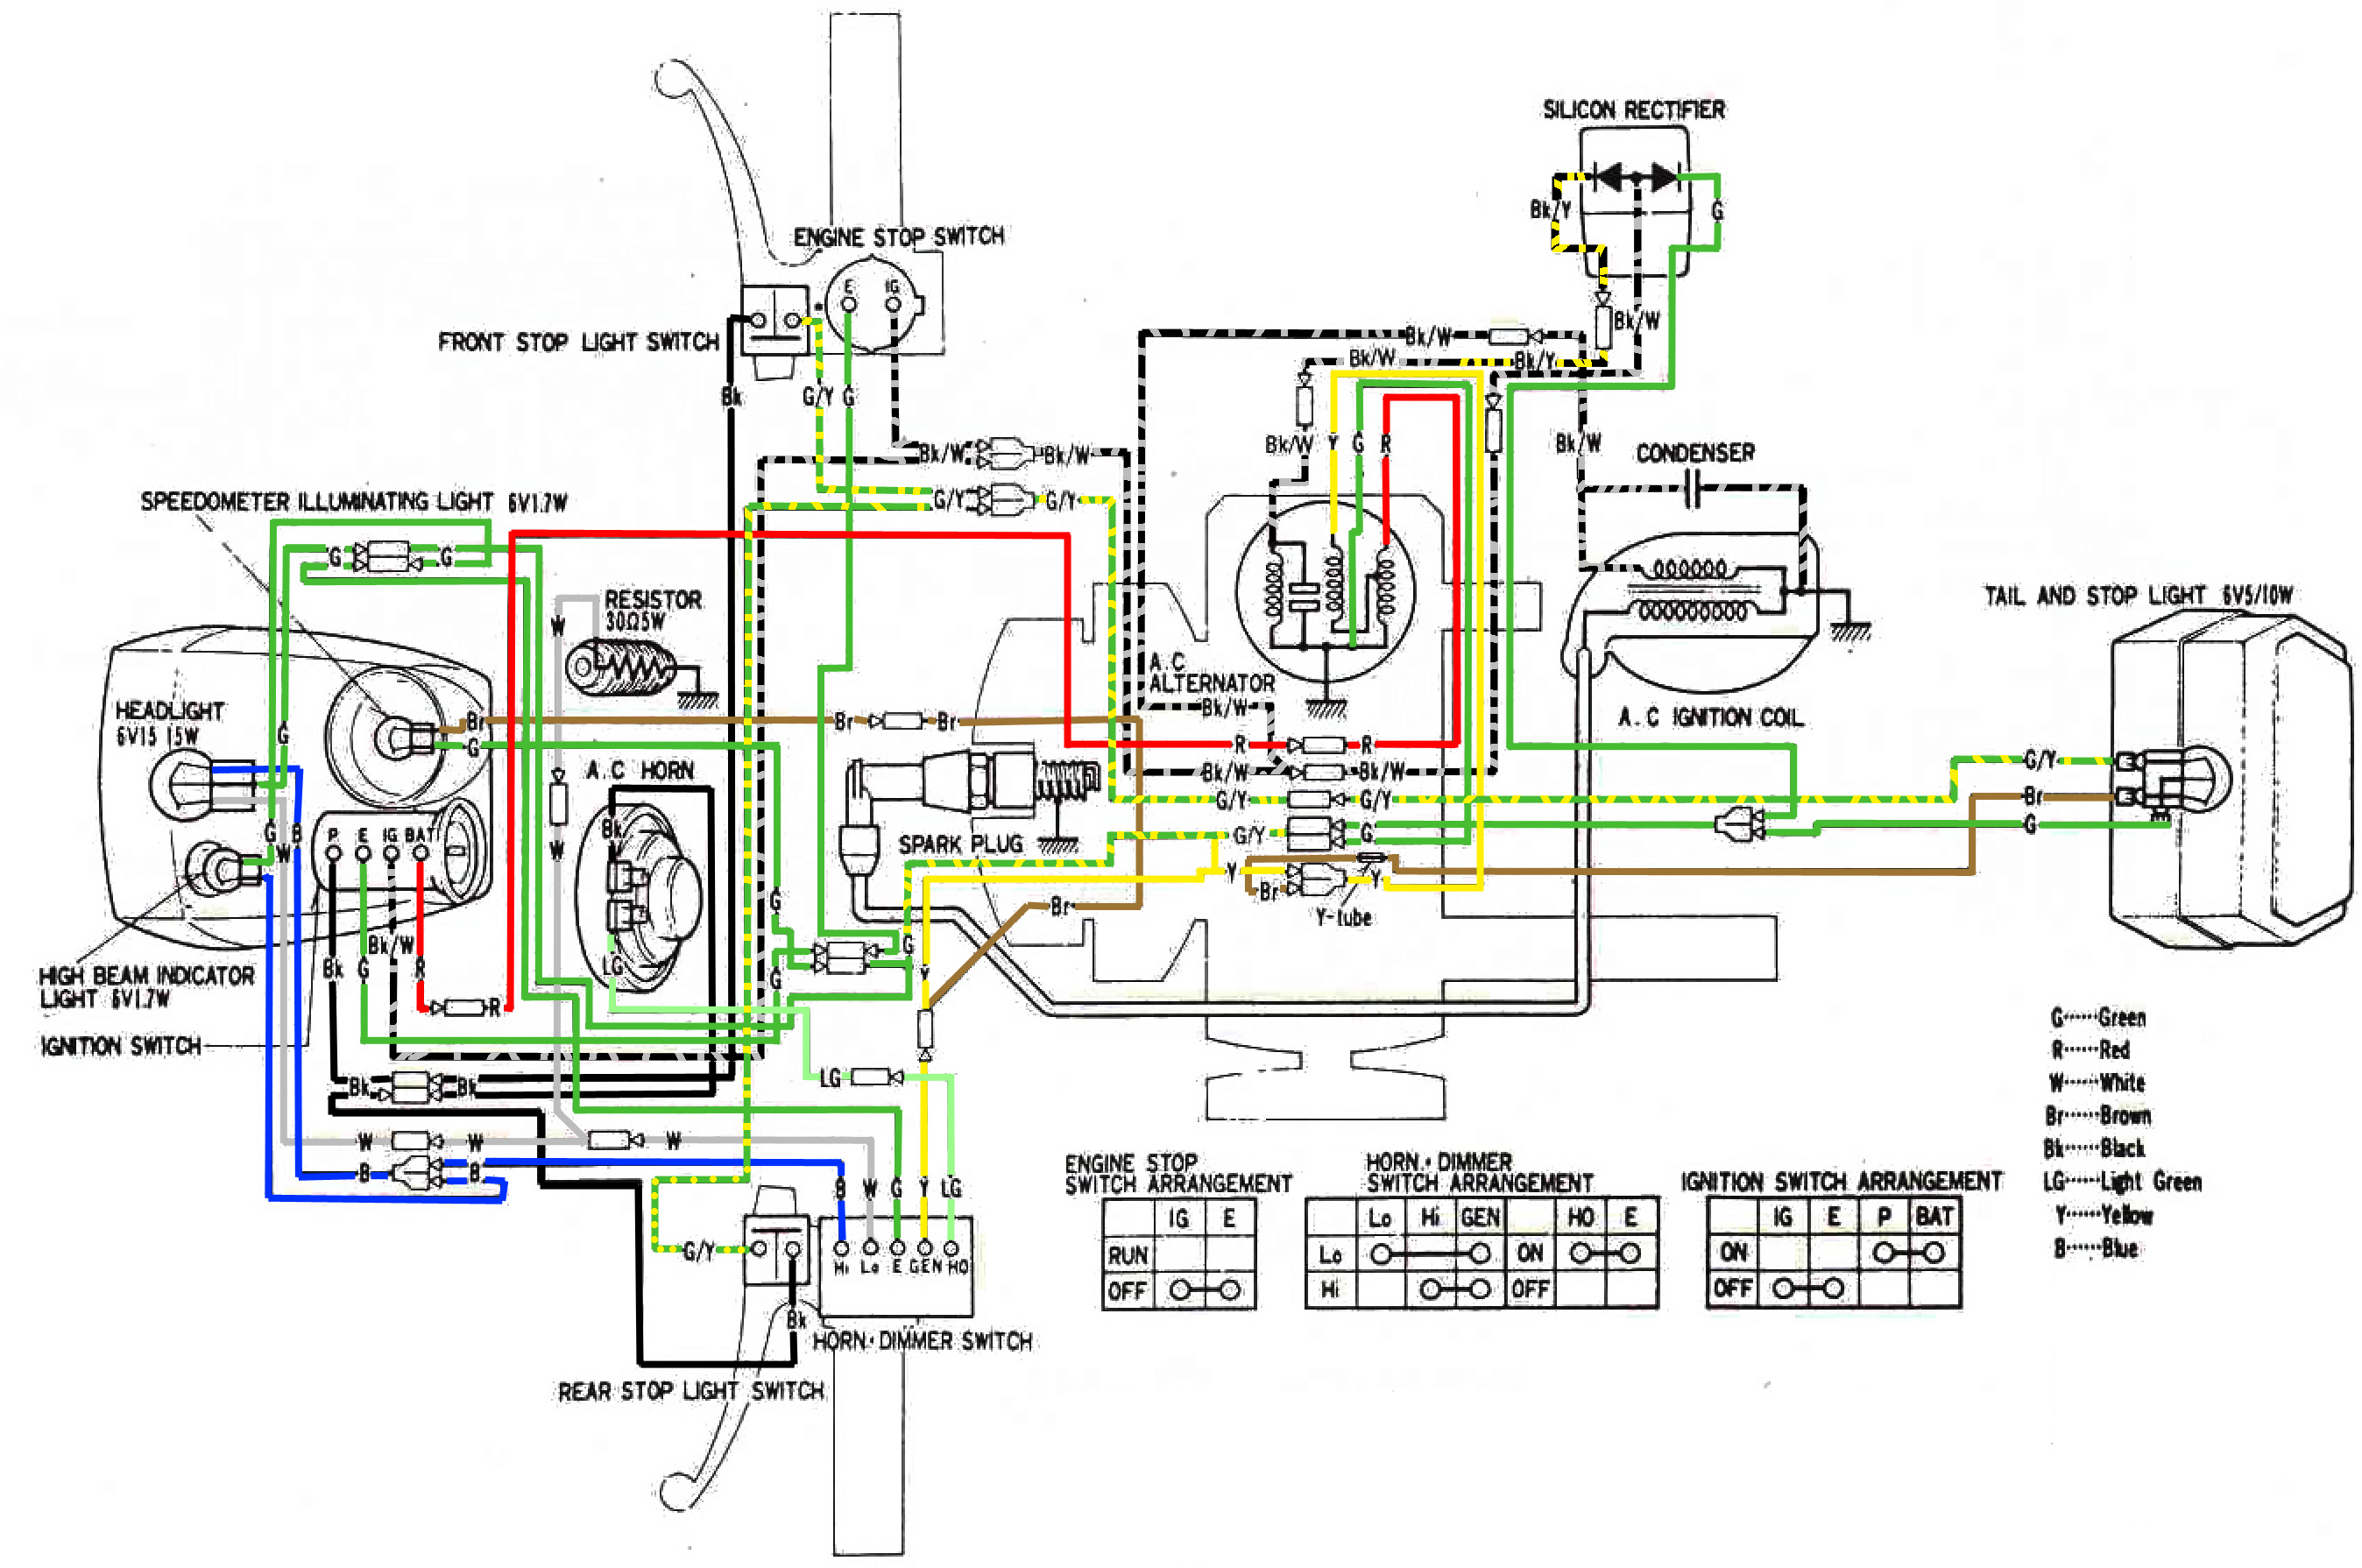 1978 Honda Nc50 Wiring Diagram Detailed Schematics Ct90 Ct110 Electrical Express All Kind Of Diagrams U2022 Cb750k